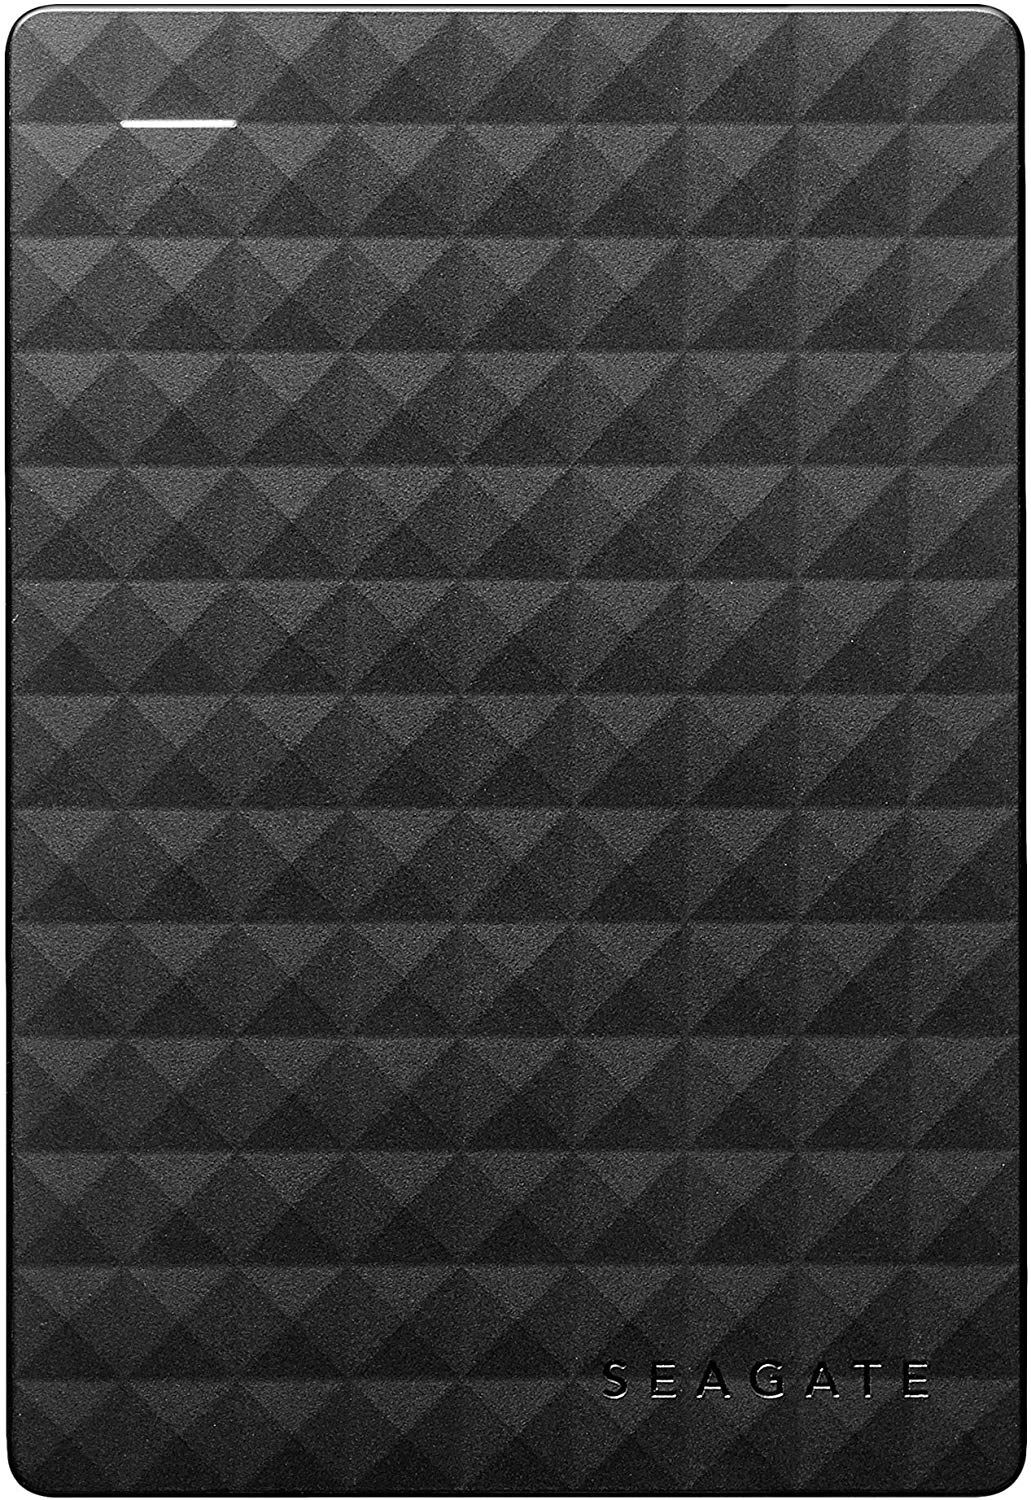 Seagate Expansion Portable 1.5TB External Hard Drive HDD